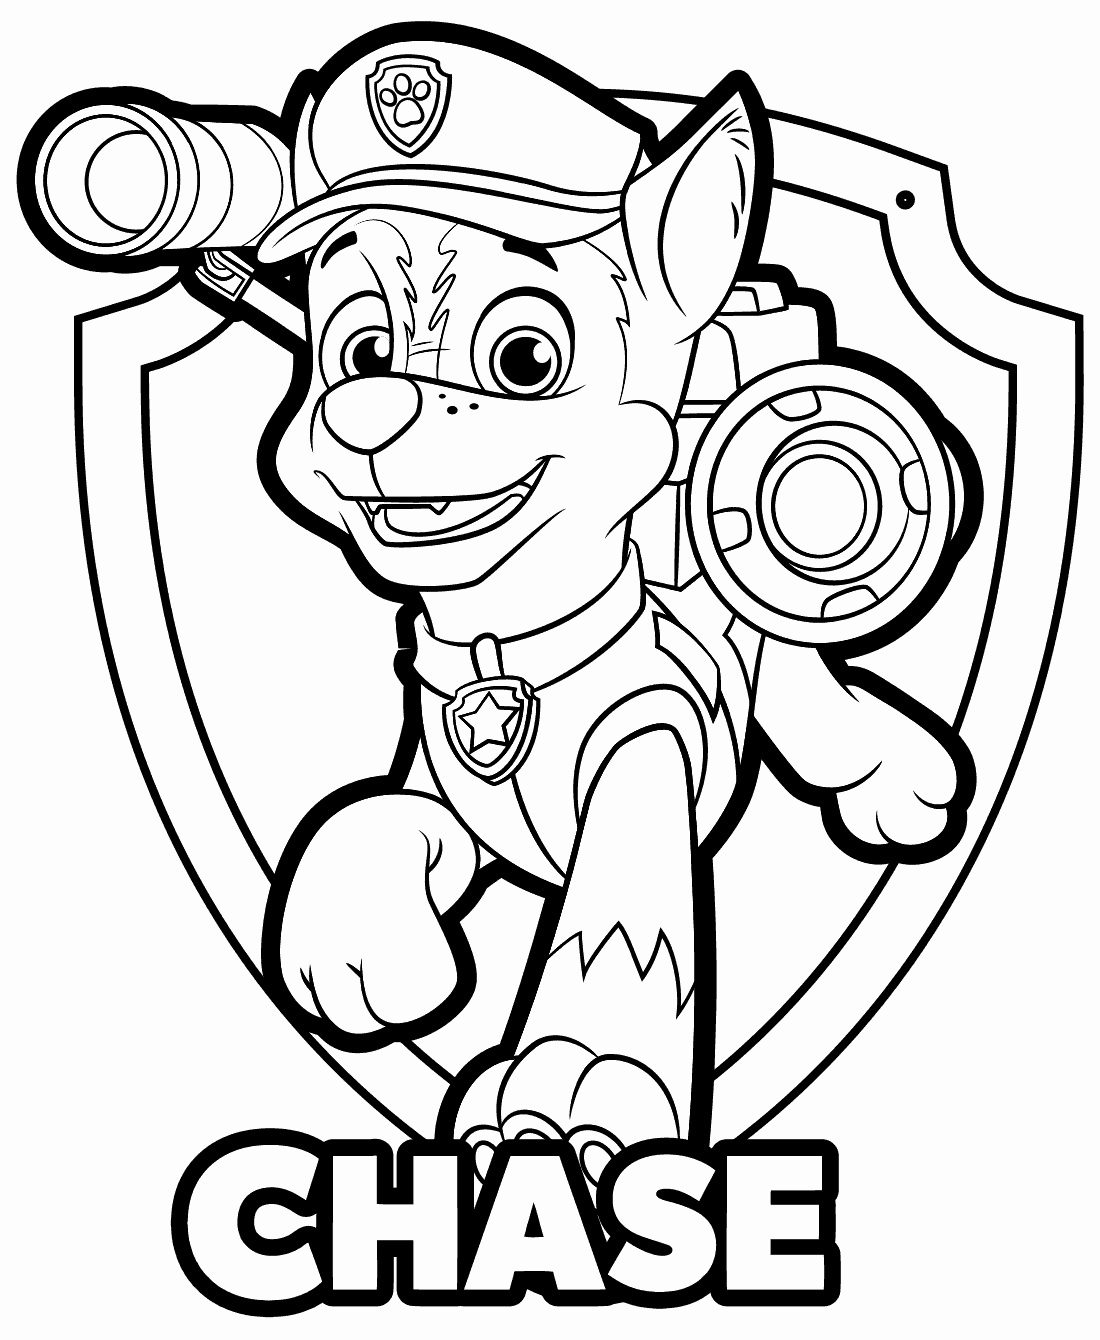 chase paw patrol coloring page at getdrawings  free download